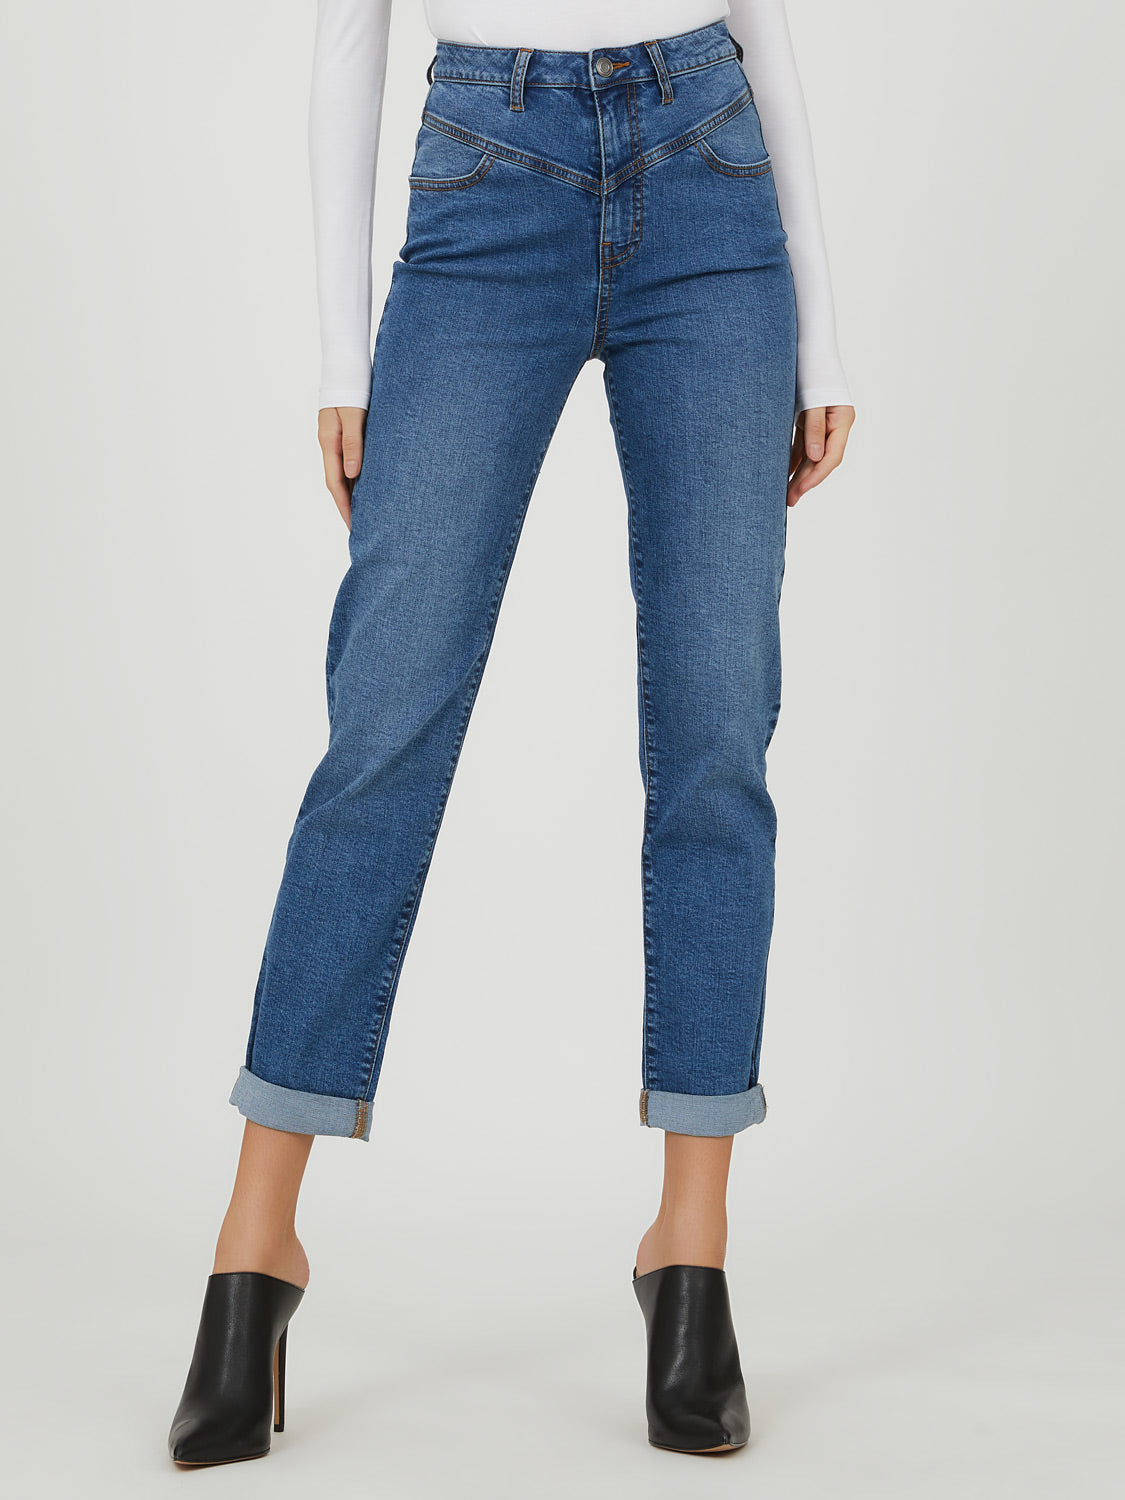 Slim Leg Cuffed Crop Jeans